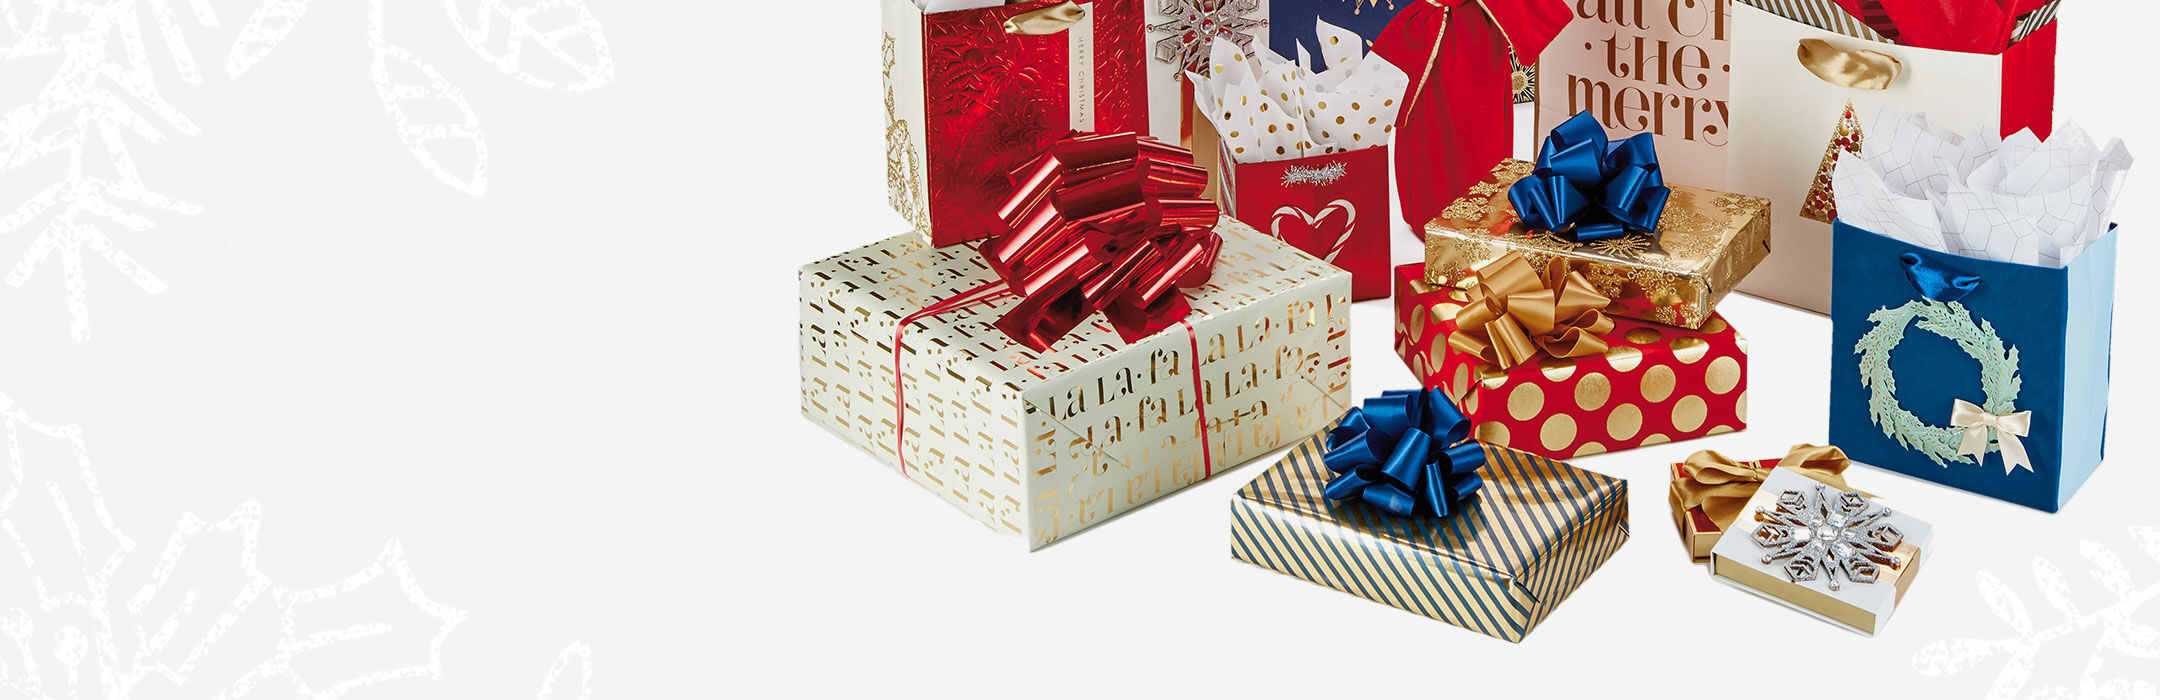 Gift Wrap, Wrapping Paper, Gift Bags and Trims | Hallmark